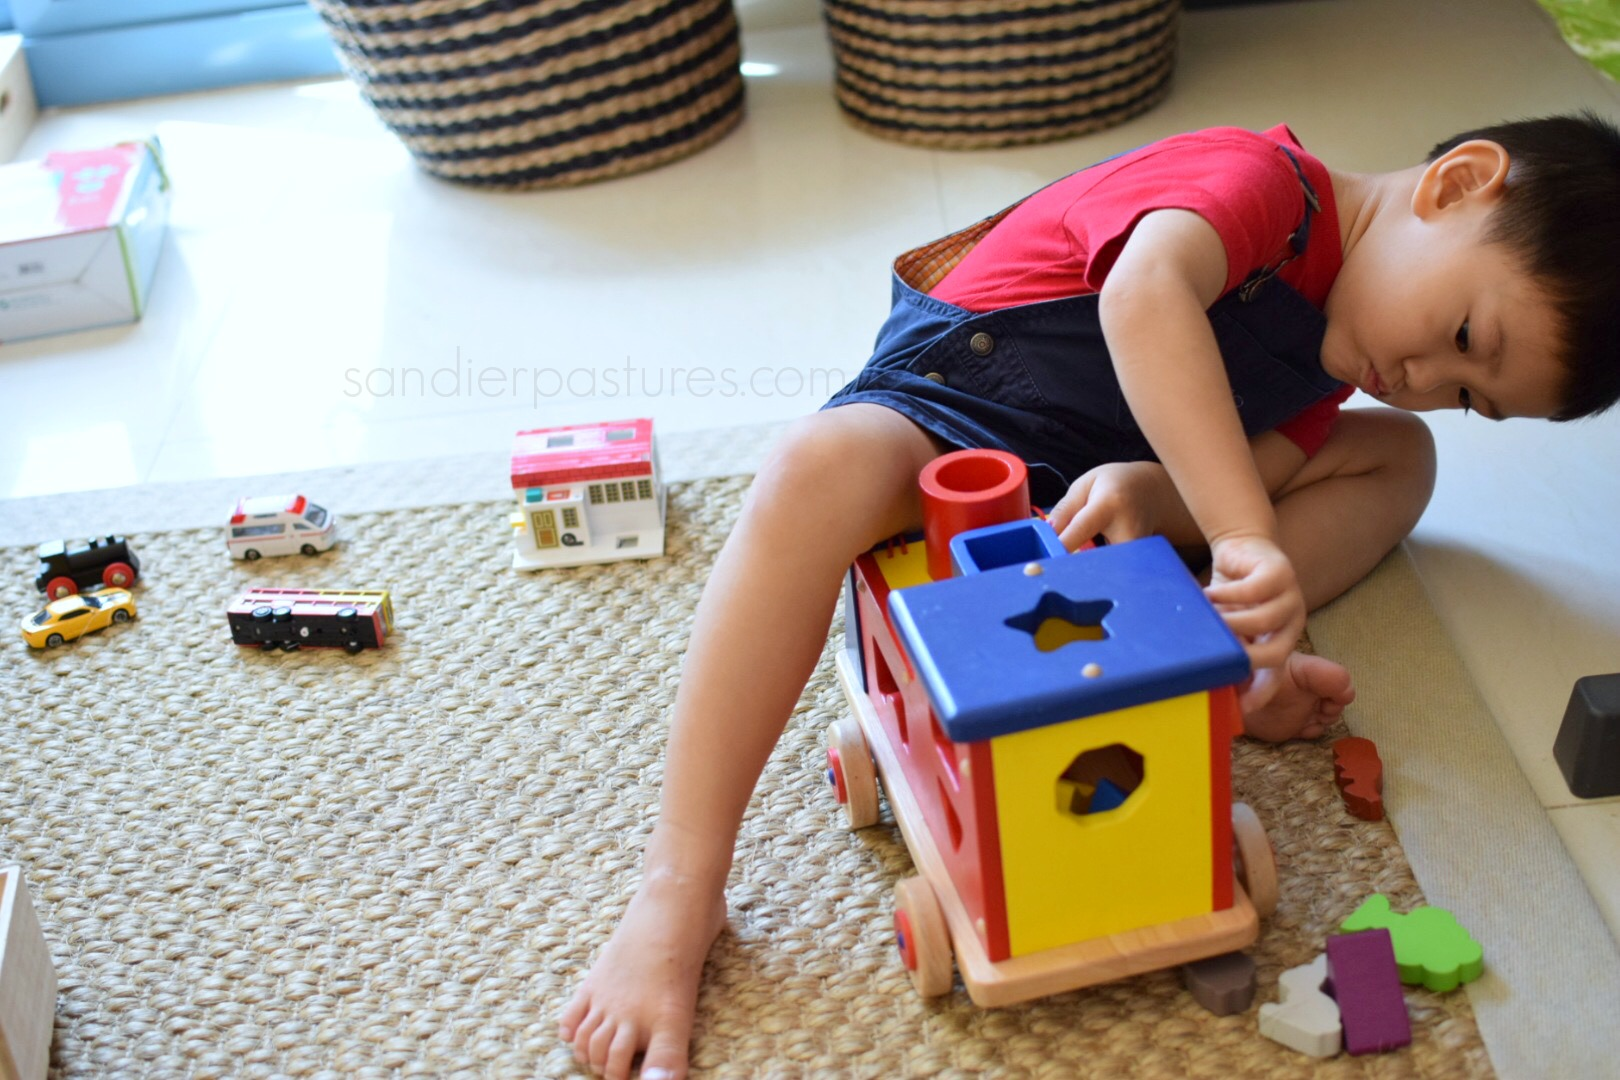 Why Shop Toys Online